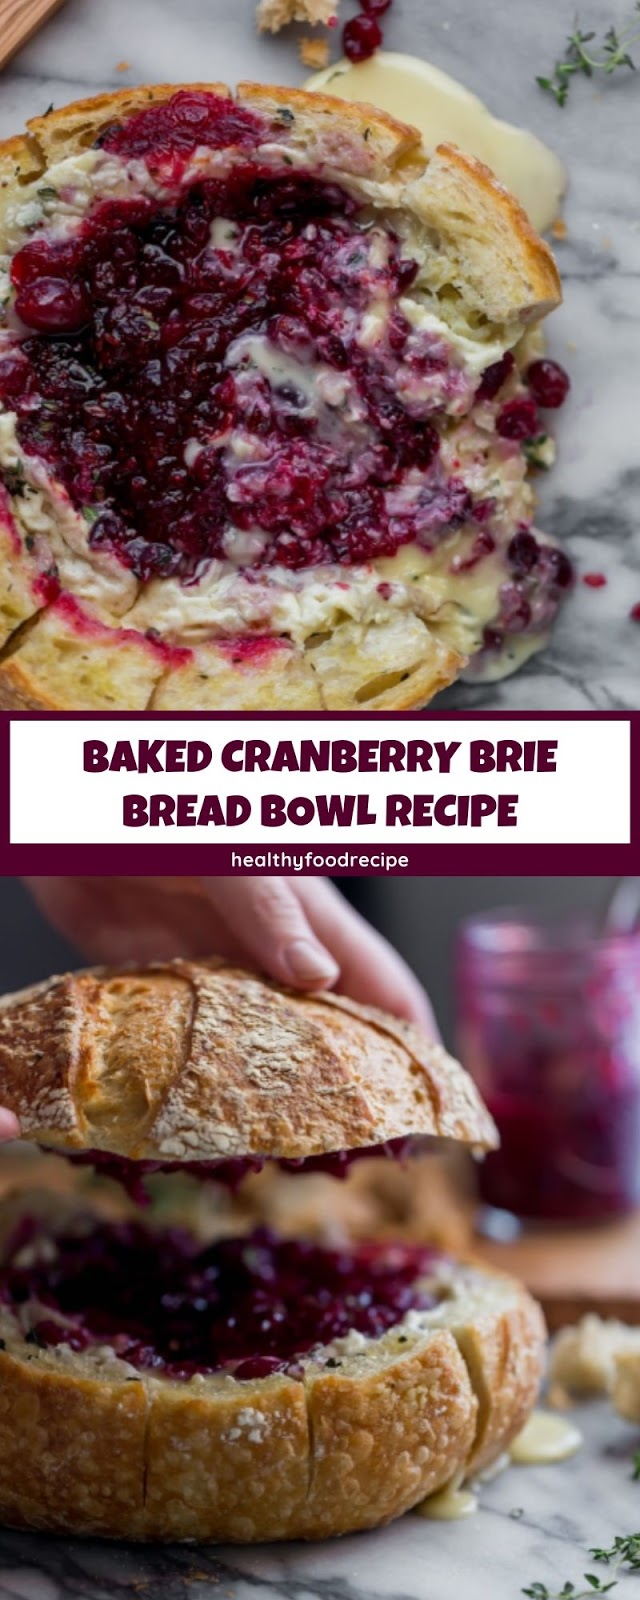 BAKED CRANBERRY BRIE BREAD BOWL RECIPE